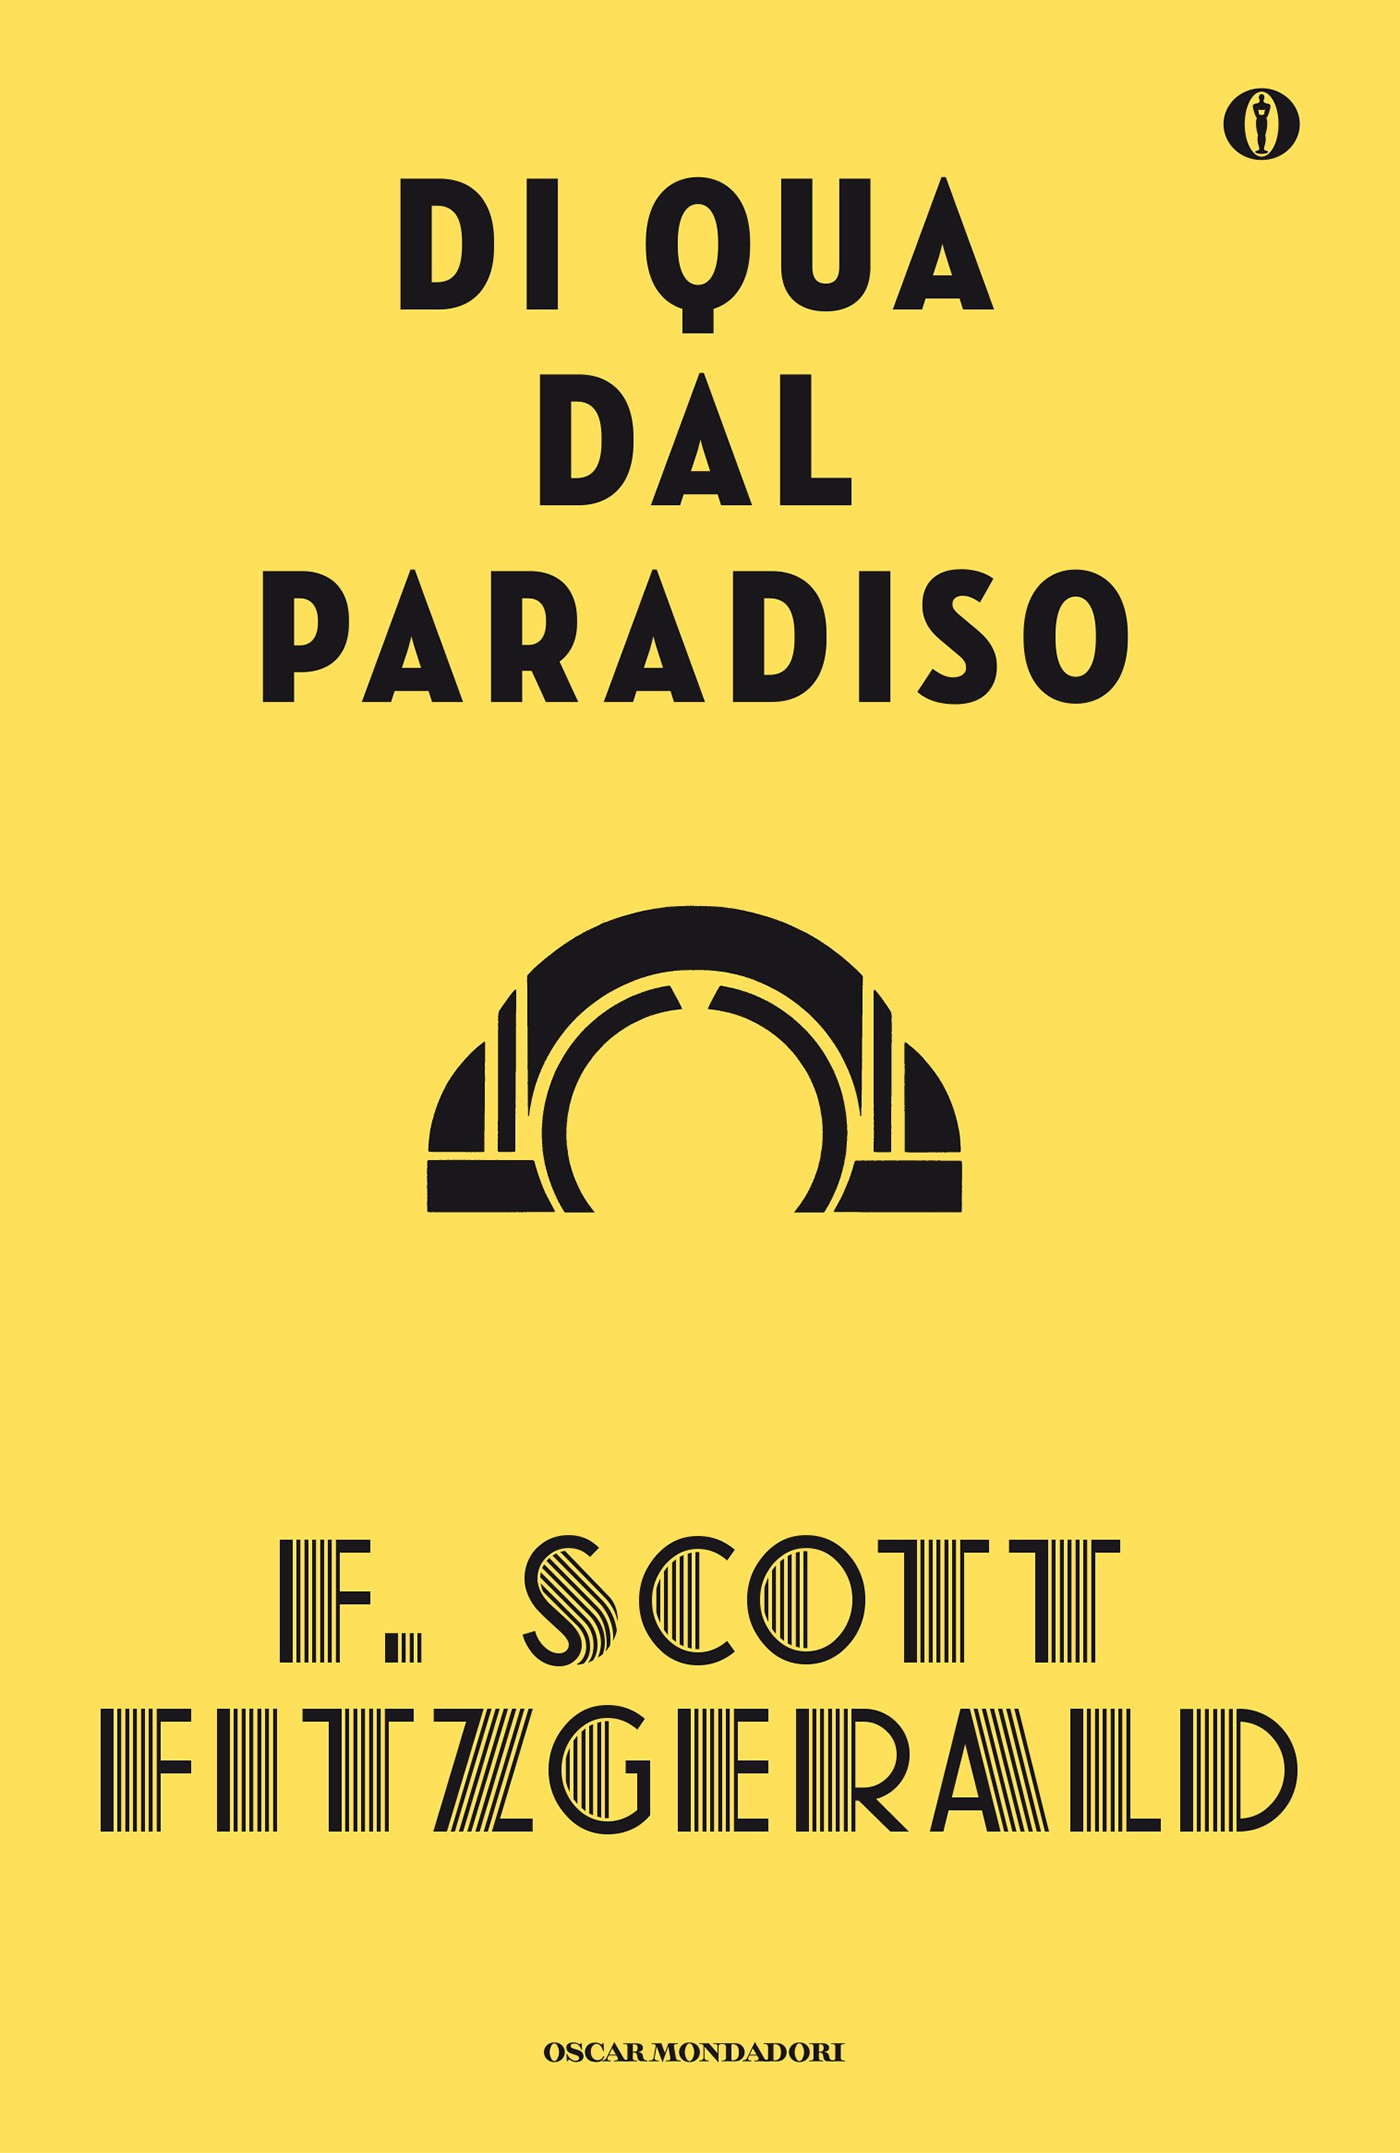 Google Book Cover Images Api : Di qua dal paradiso francis scott fitzgerald ebook